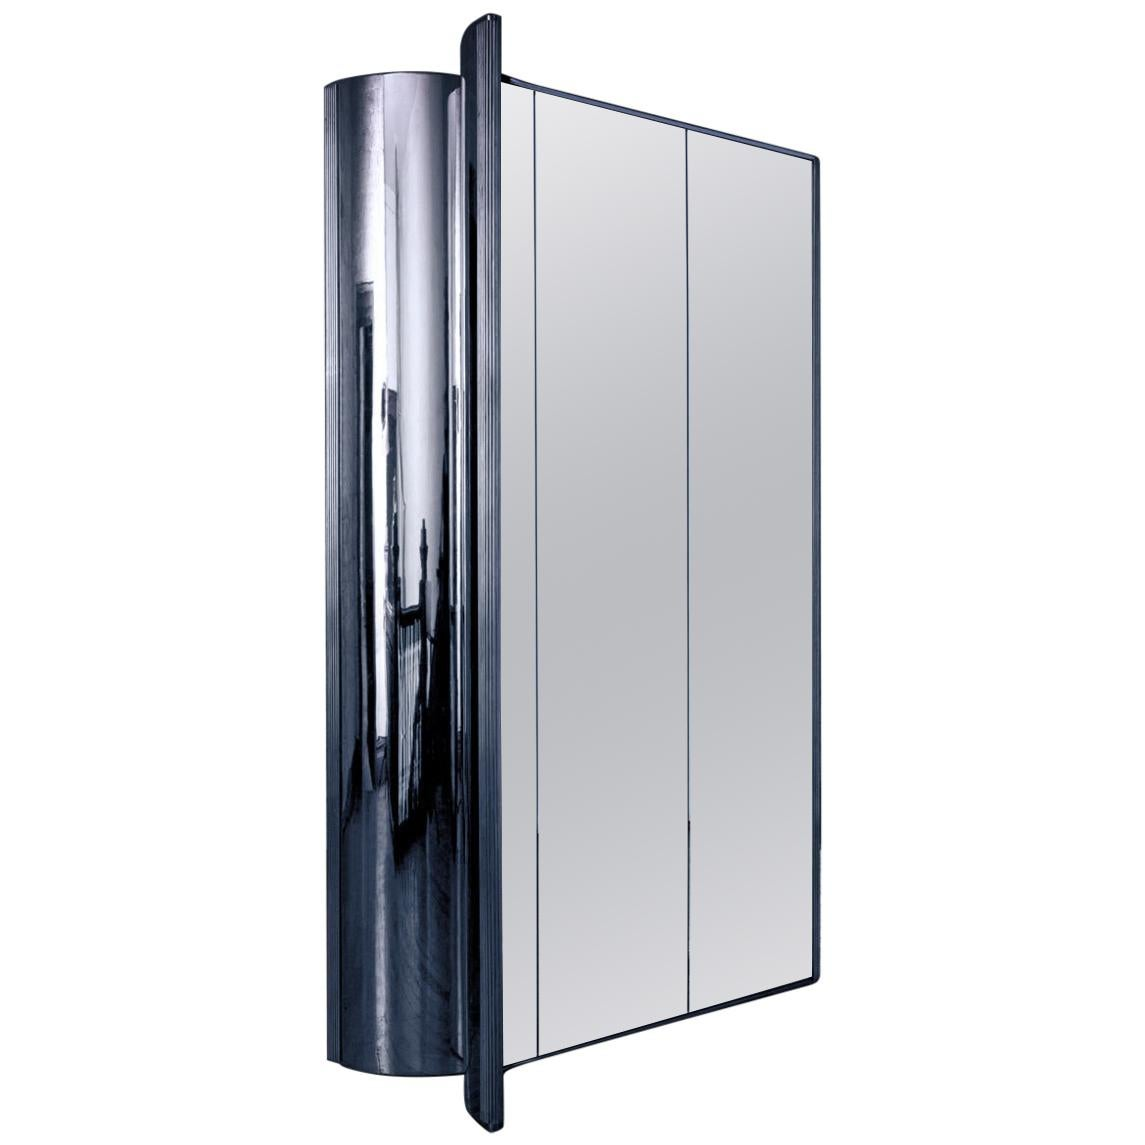 Mirrored Room Divider with Reflective Chrome Plating